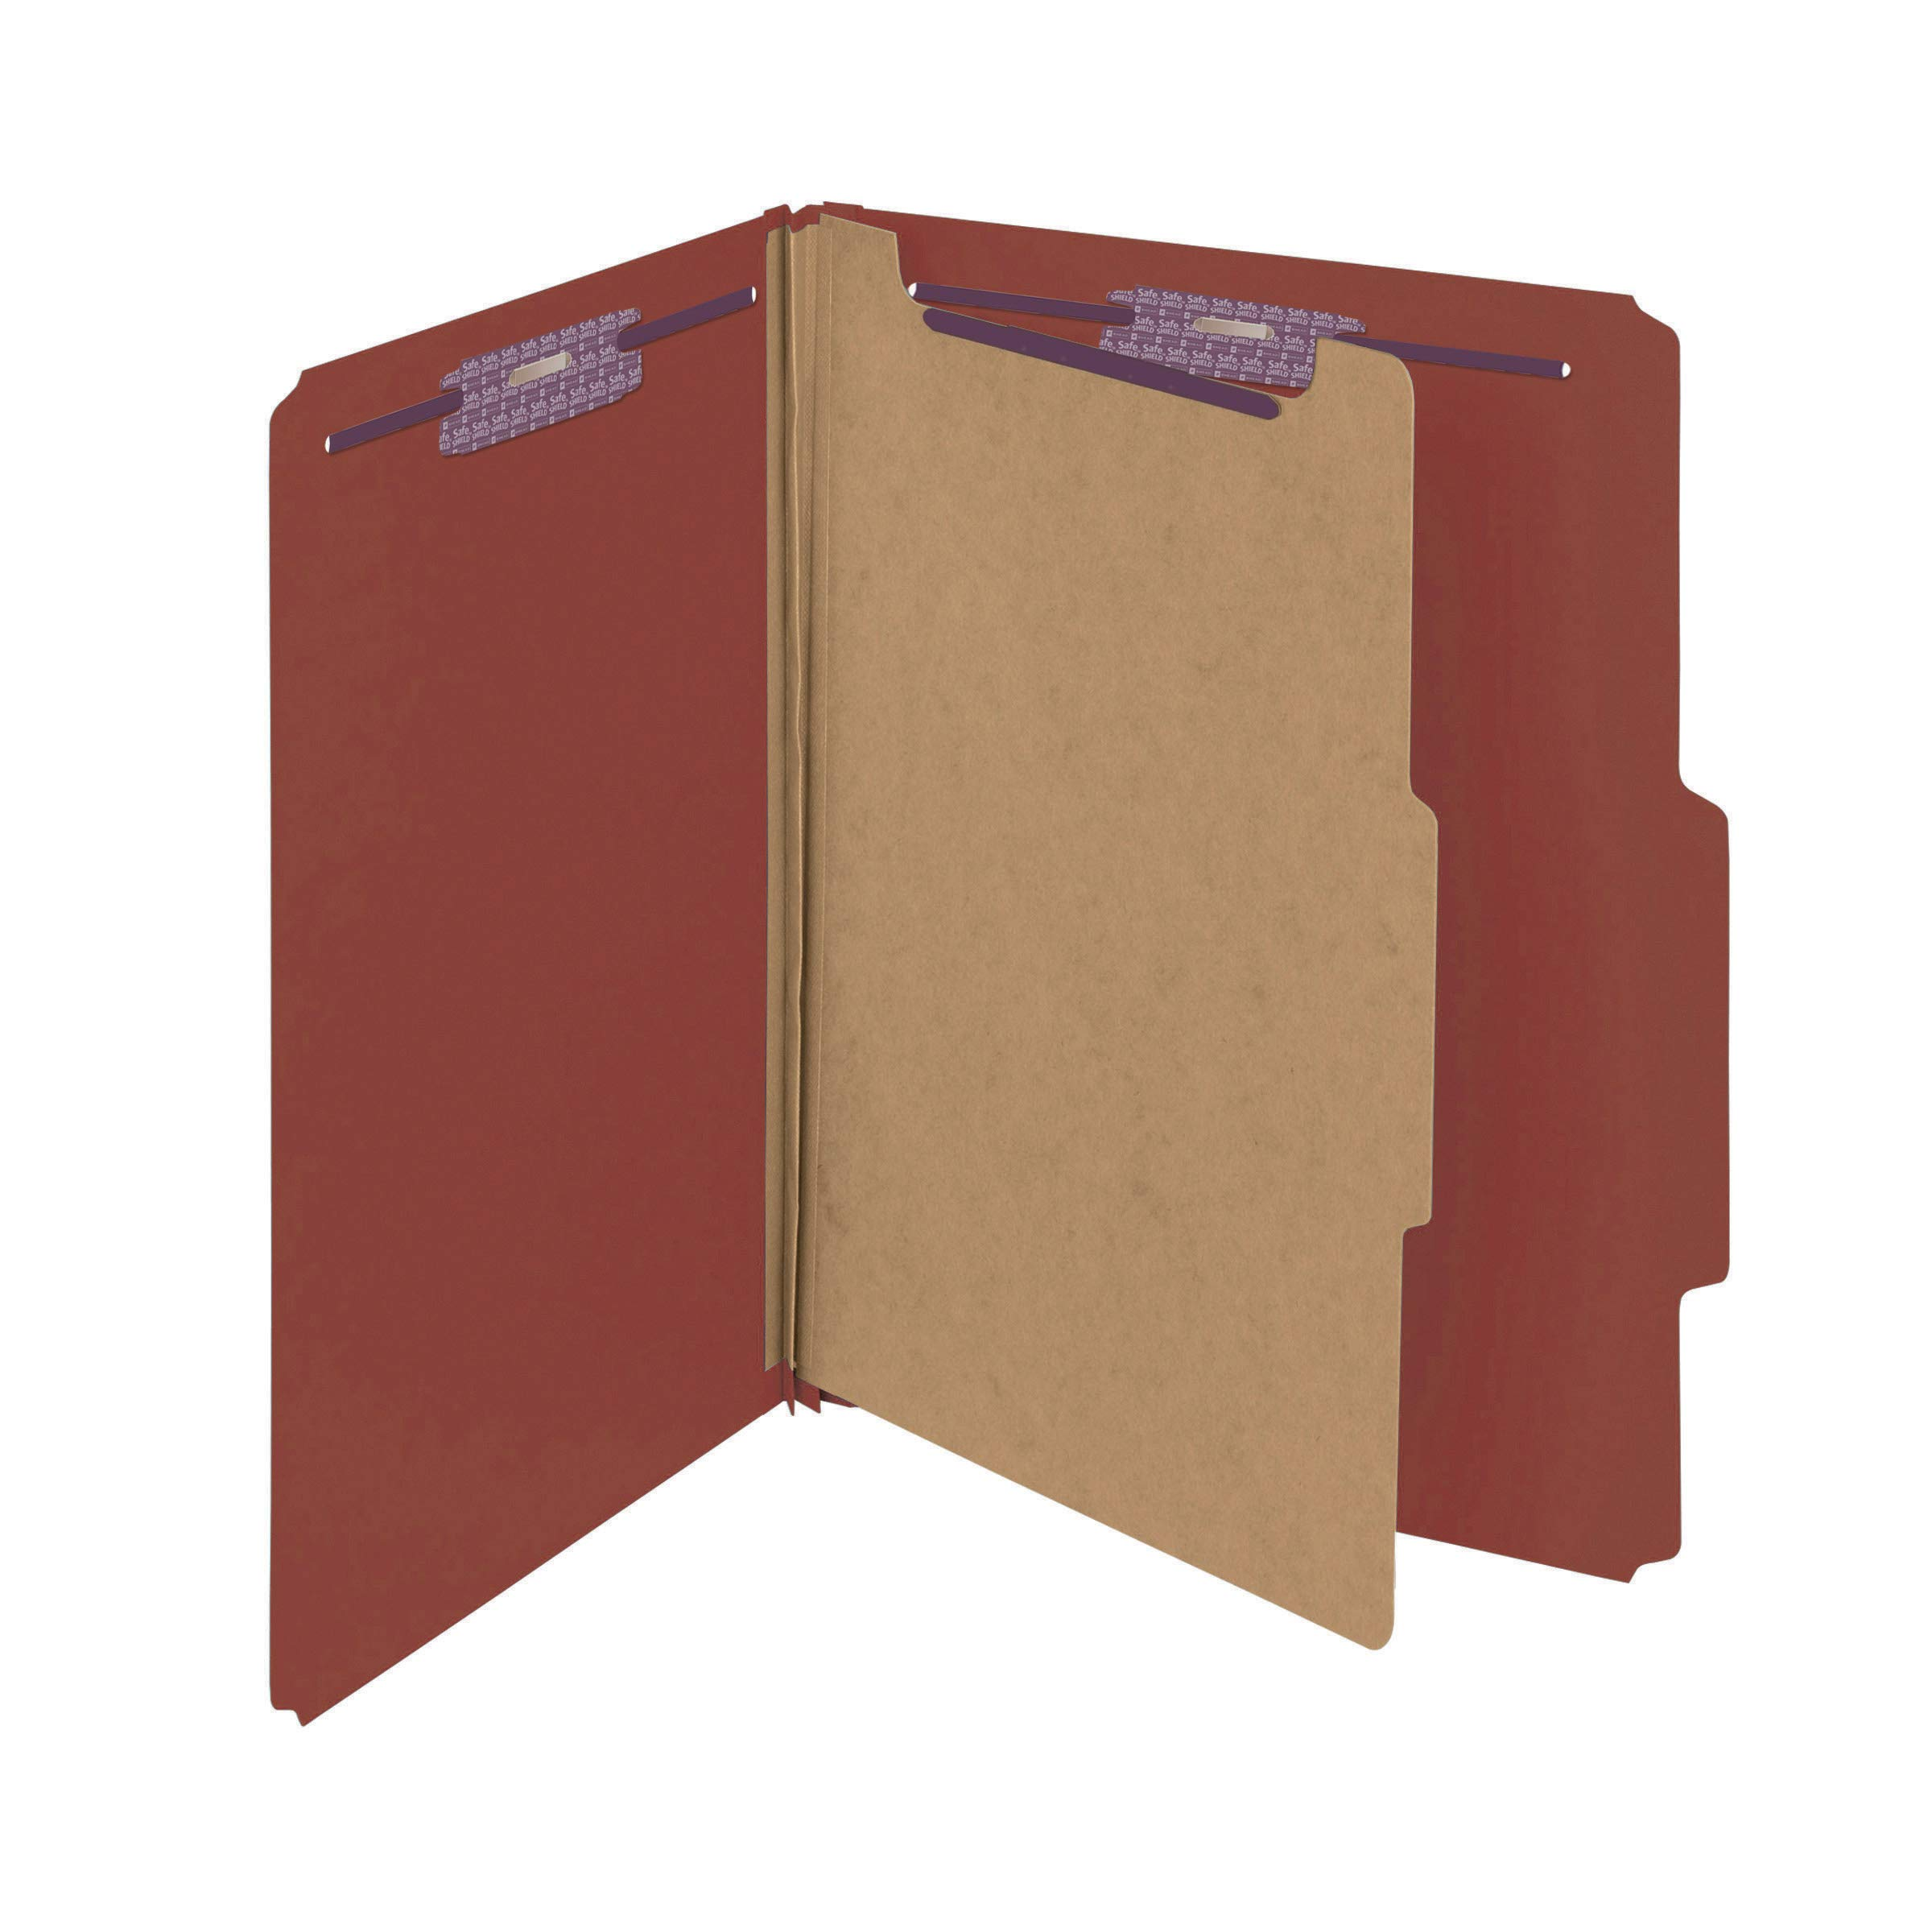 Smead Pressboard Classification File Folder with SafeSHIELD Fasteners, 1 Divider, 2'' Expansion, Letter Size, Red, 10 per Box (13775)